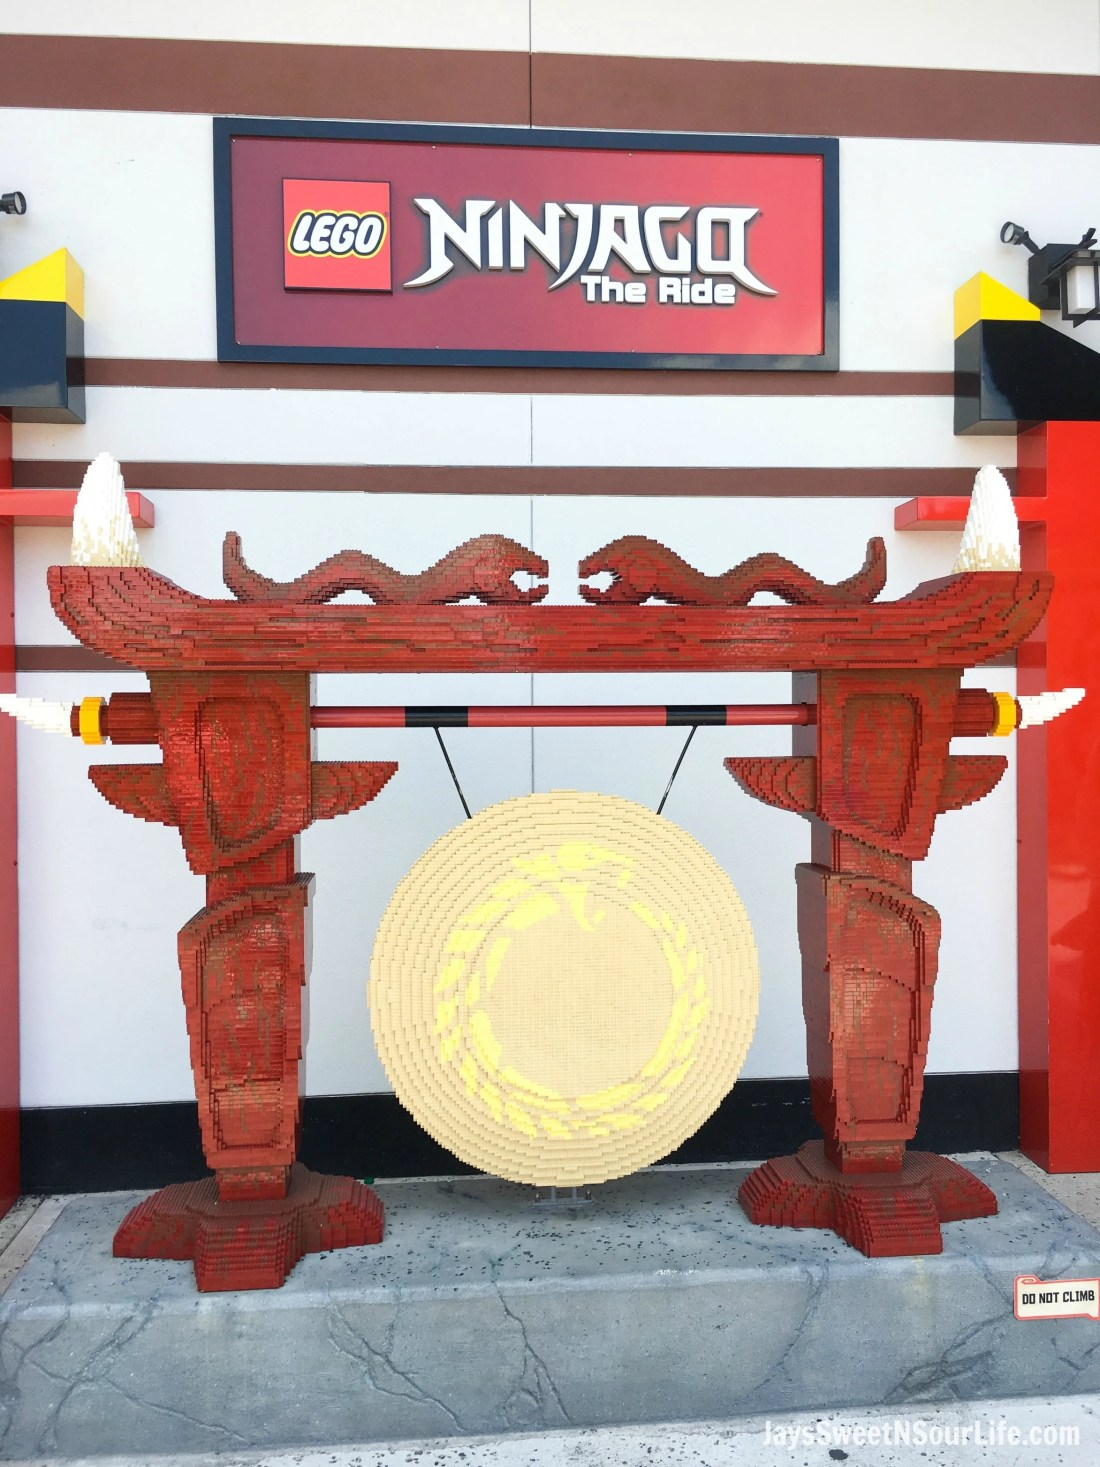 Legoland Florida Ninjago World Ride Entrance Closeup. Spend your summer building memories at Legoland in Florida. There is something for the whole family to enjoy at this wonderful Theme Park.